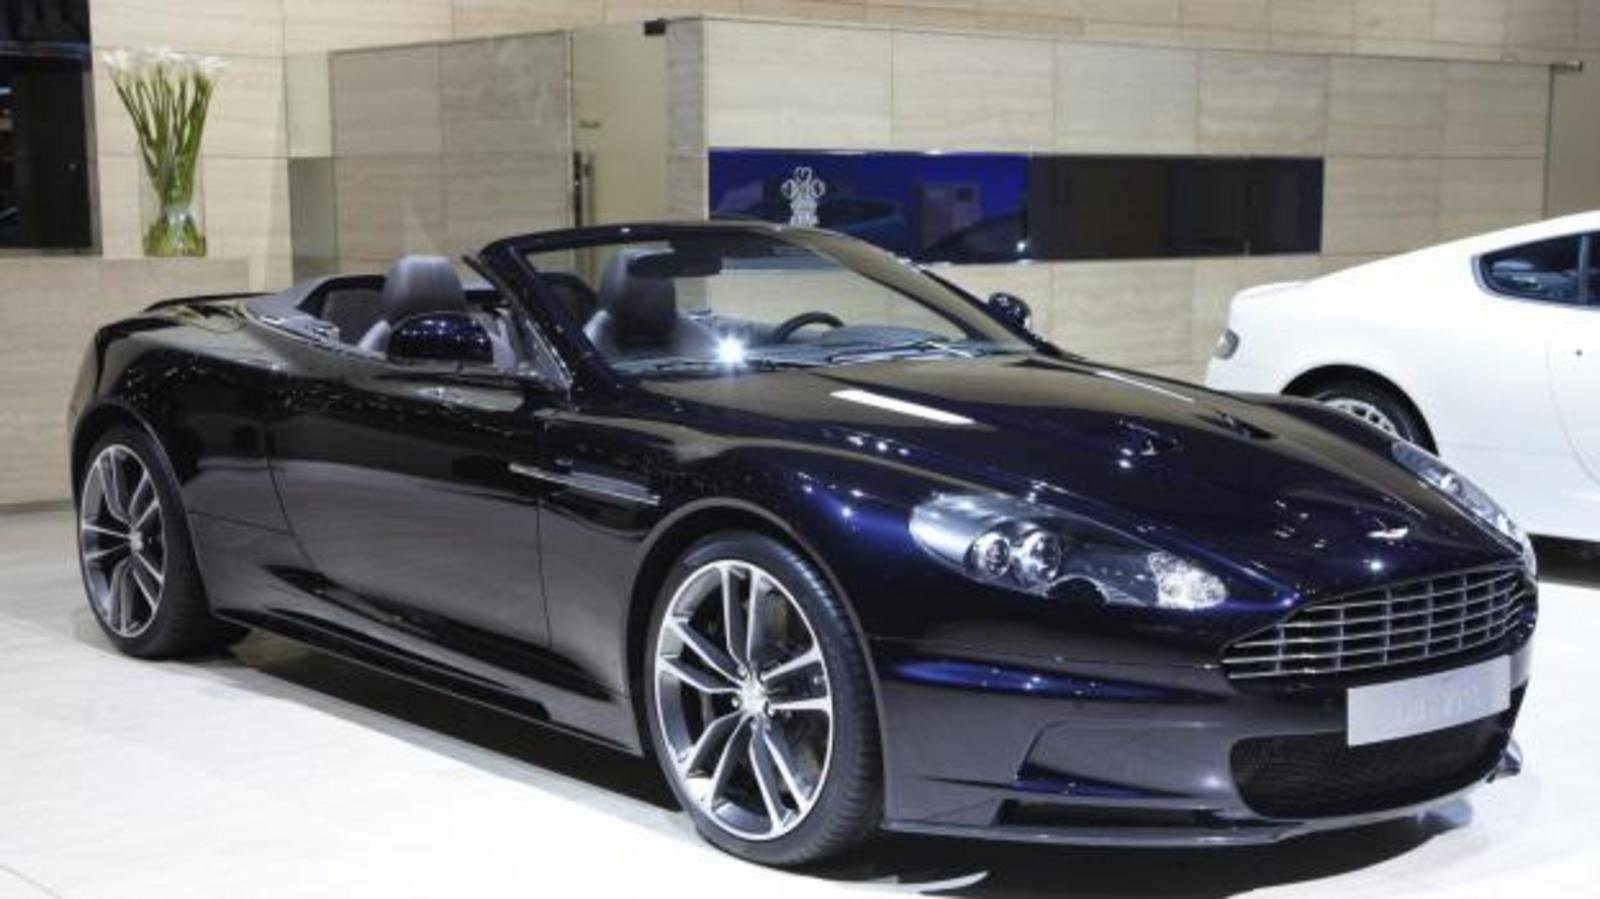 2010 Aston Martin DBS UB 2010 Limited Edition